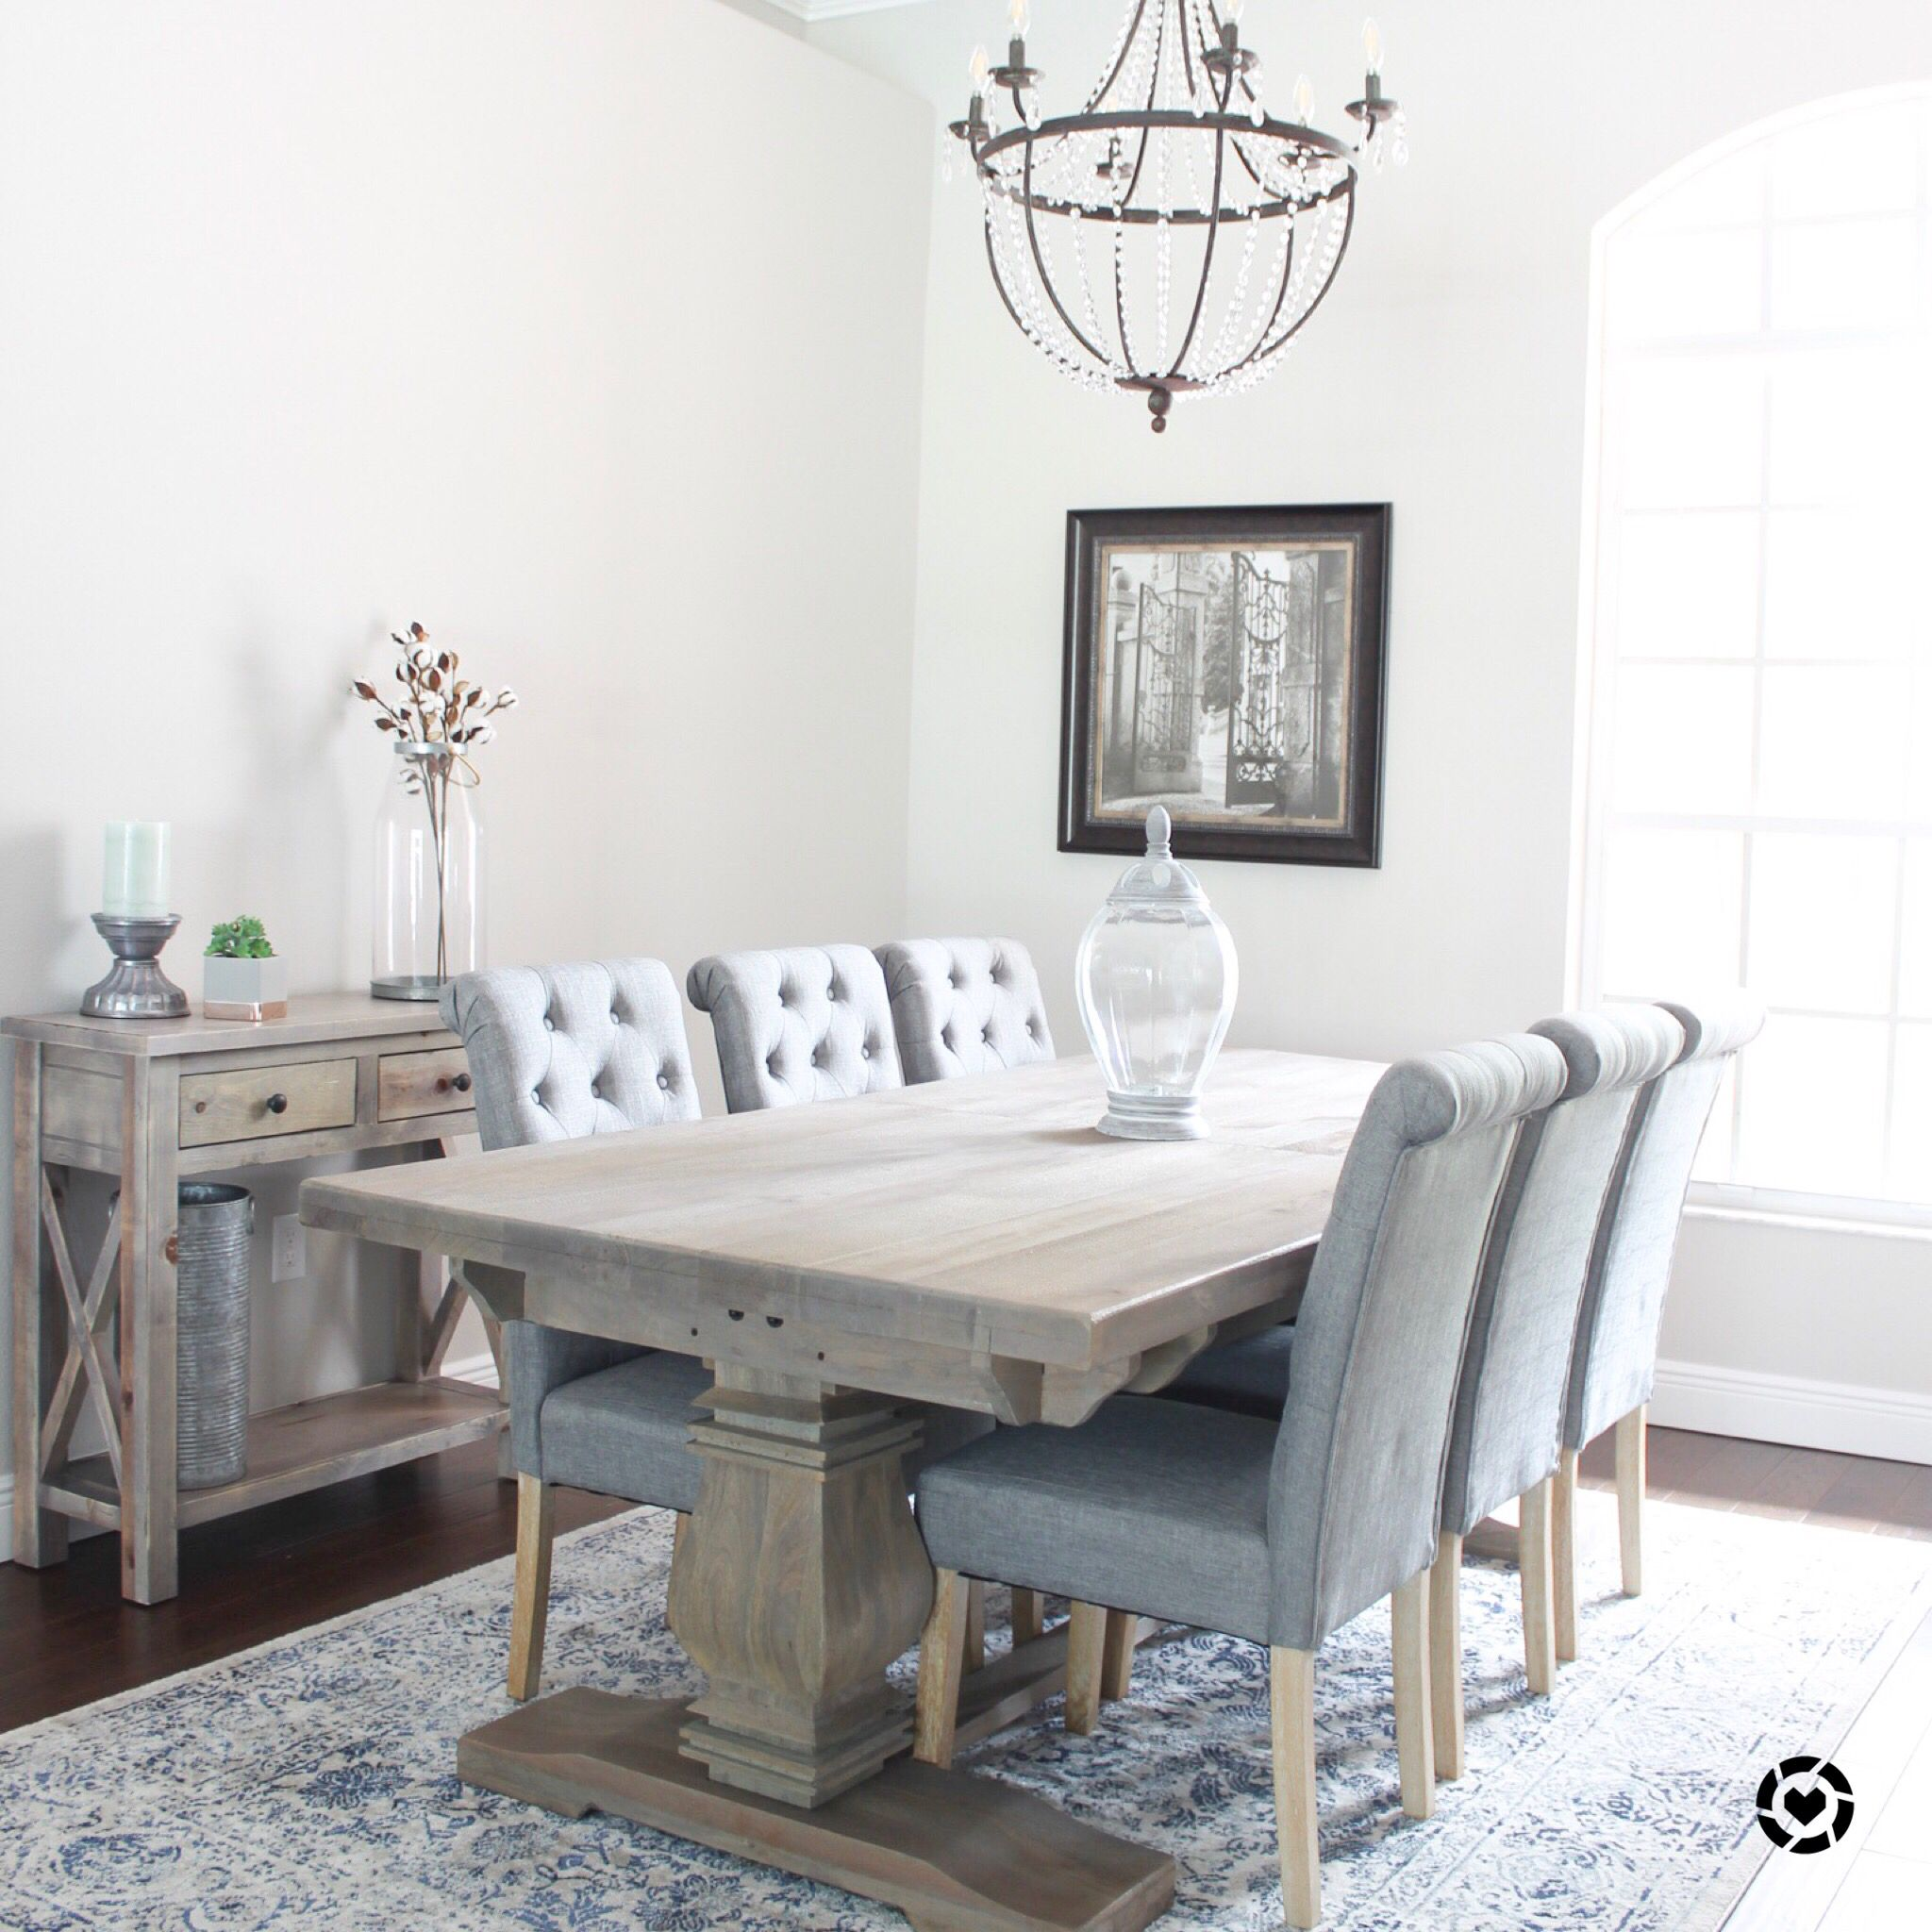 Charming And Cheap Decor Ideas Formal Dining Room: Budget Farmhouse Trestle Table